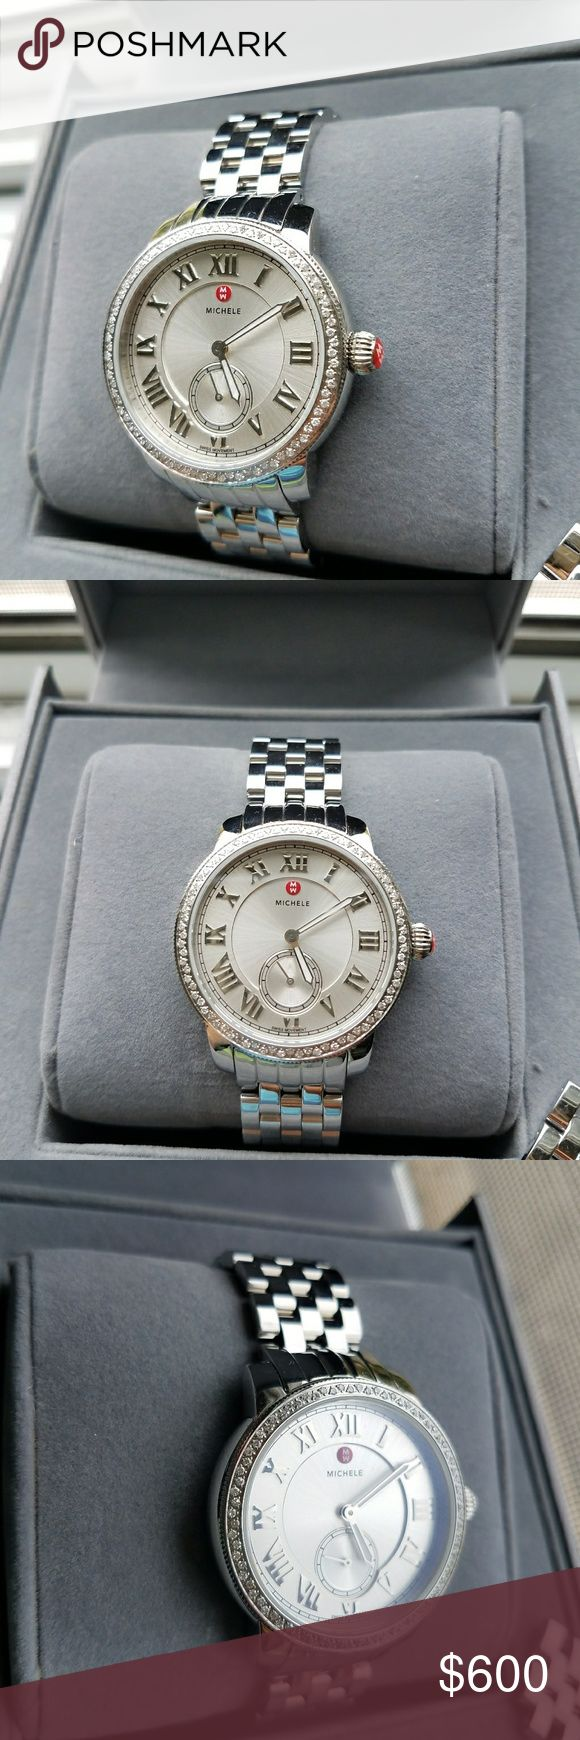 Michele Harbor Diamond Bezel ladies watch It is like new authentic Michele watch comes with original box and extra links.  Model number : MWW28A000001 Case Size : 35mm Strap Size : 16 mm Silver tone hands and roman numeral hour markers on silver dial Number of Diamonds - 0.35 ct tw WATER RESISTANCE : 50 meters / 165 feet  Price on Payp, Vinted and Ven mo $450 Mer ca ri $500 Michele Accessories Watches